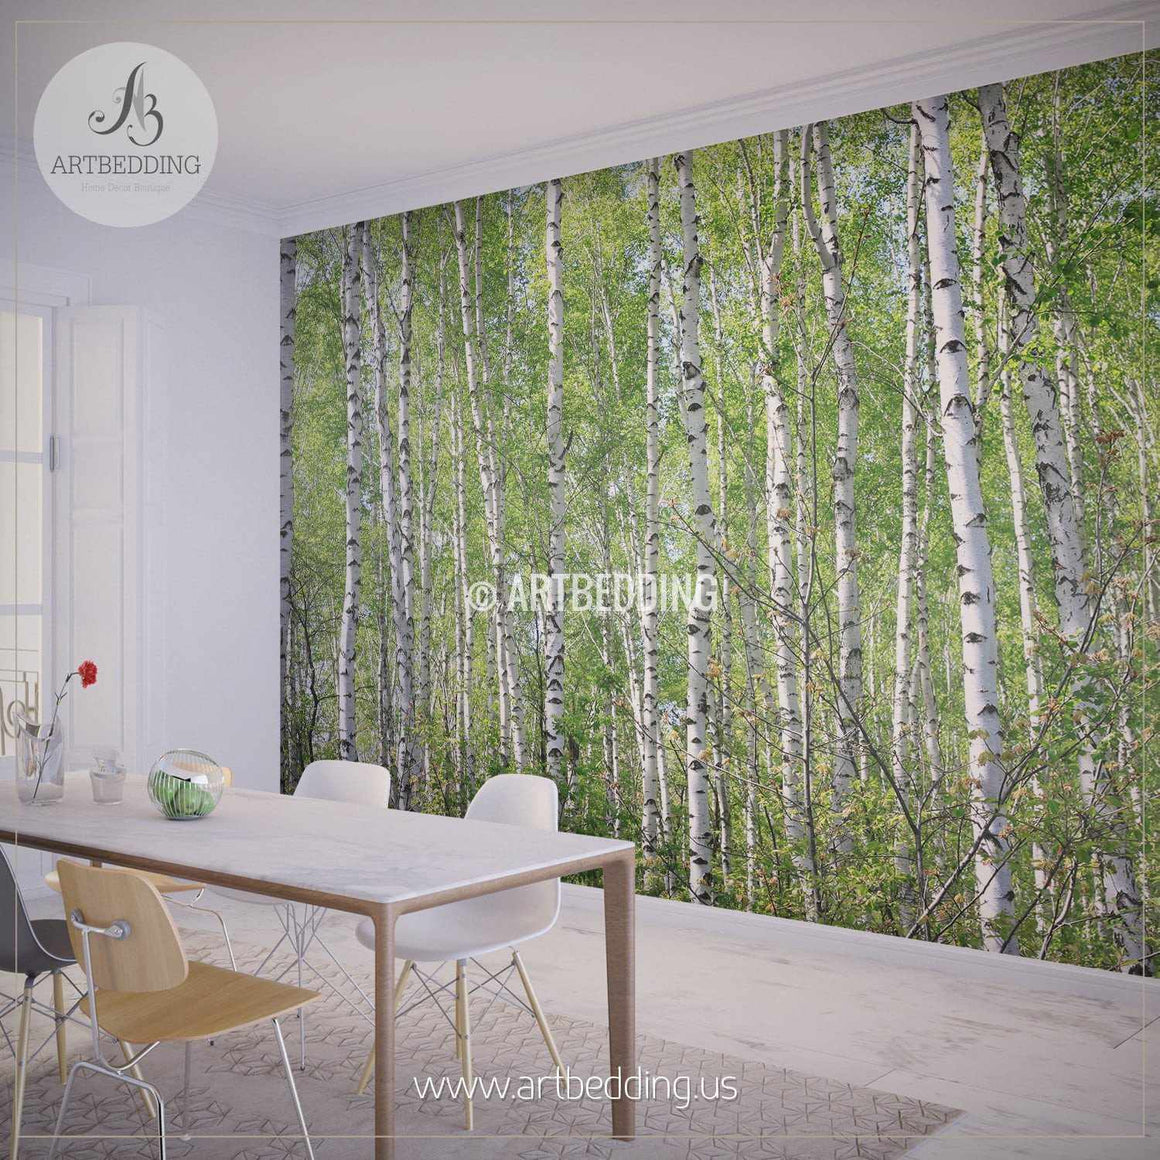 Birches in Forest Wall Mural, Photo mural Self Adhesive Peel & Stick, wall mural wall mural